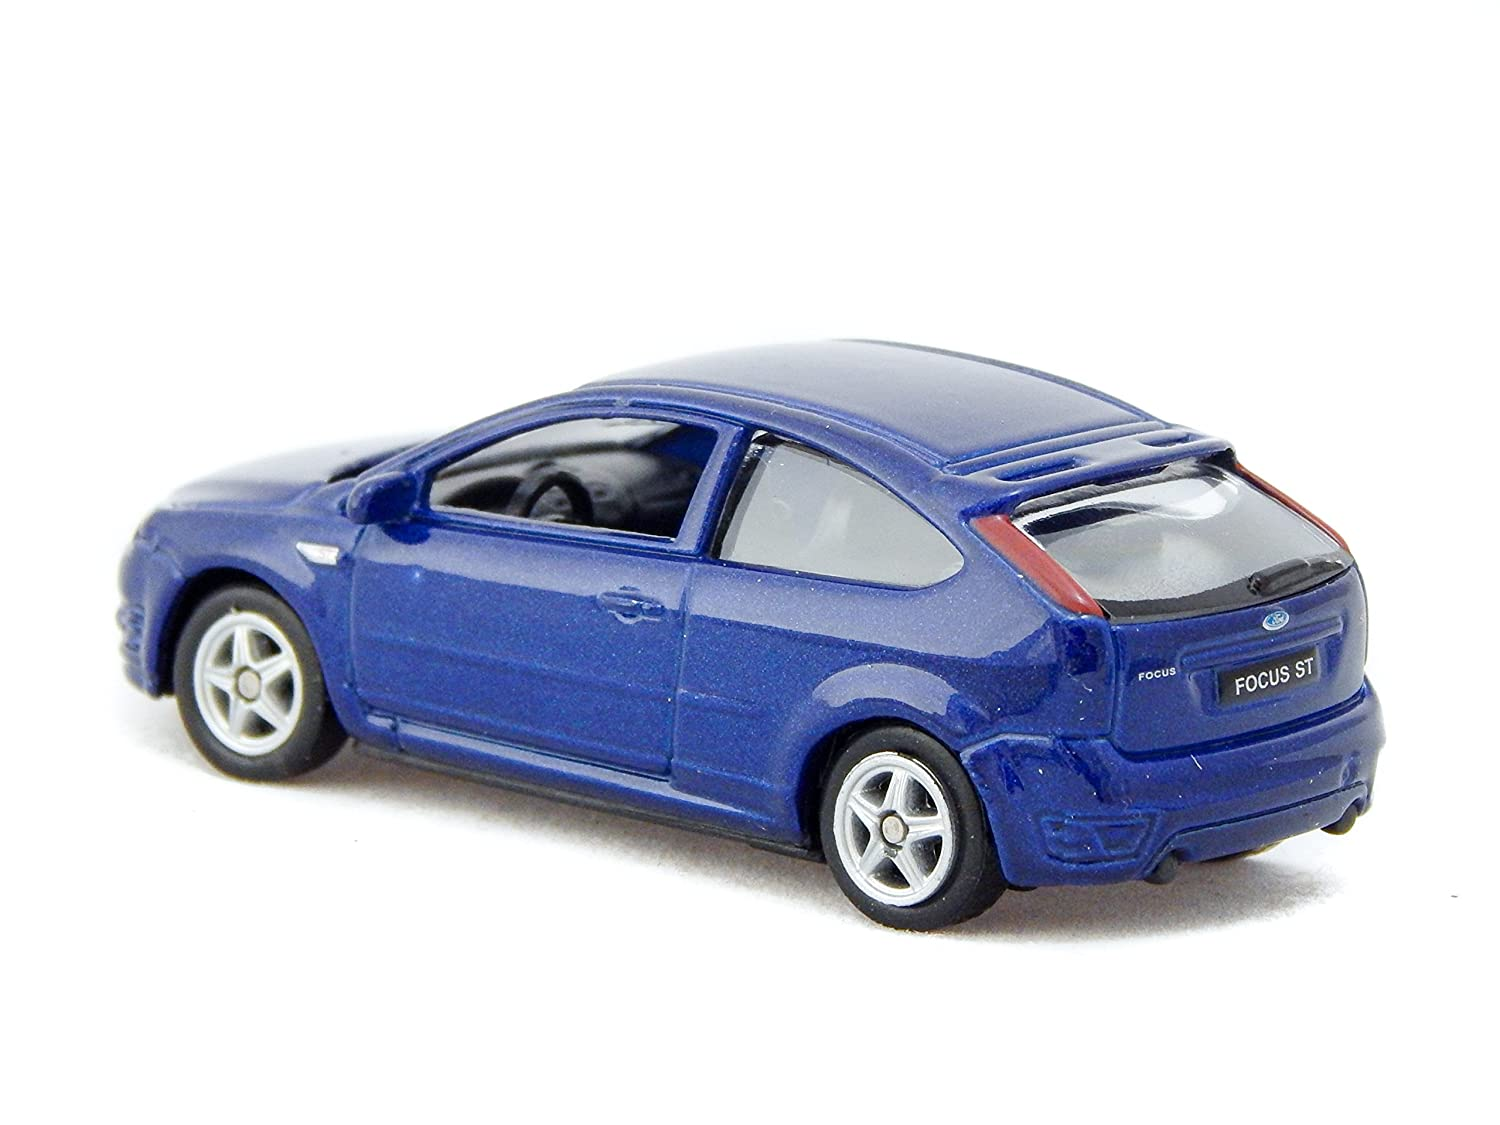 sc 1 st  Amazon.com & Amazon.com: Ford Focus ST 3-inch Toy Car: Toys u0026 Games markmcfarlin.com